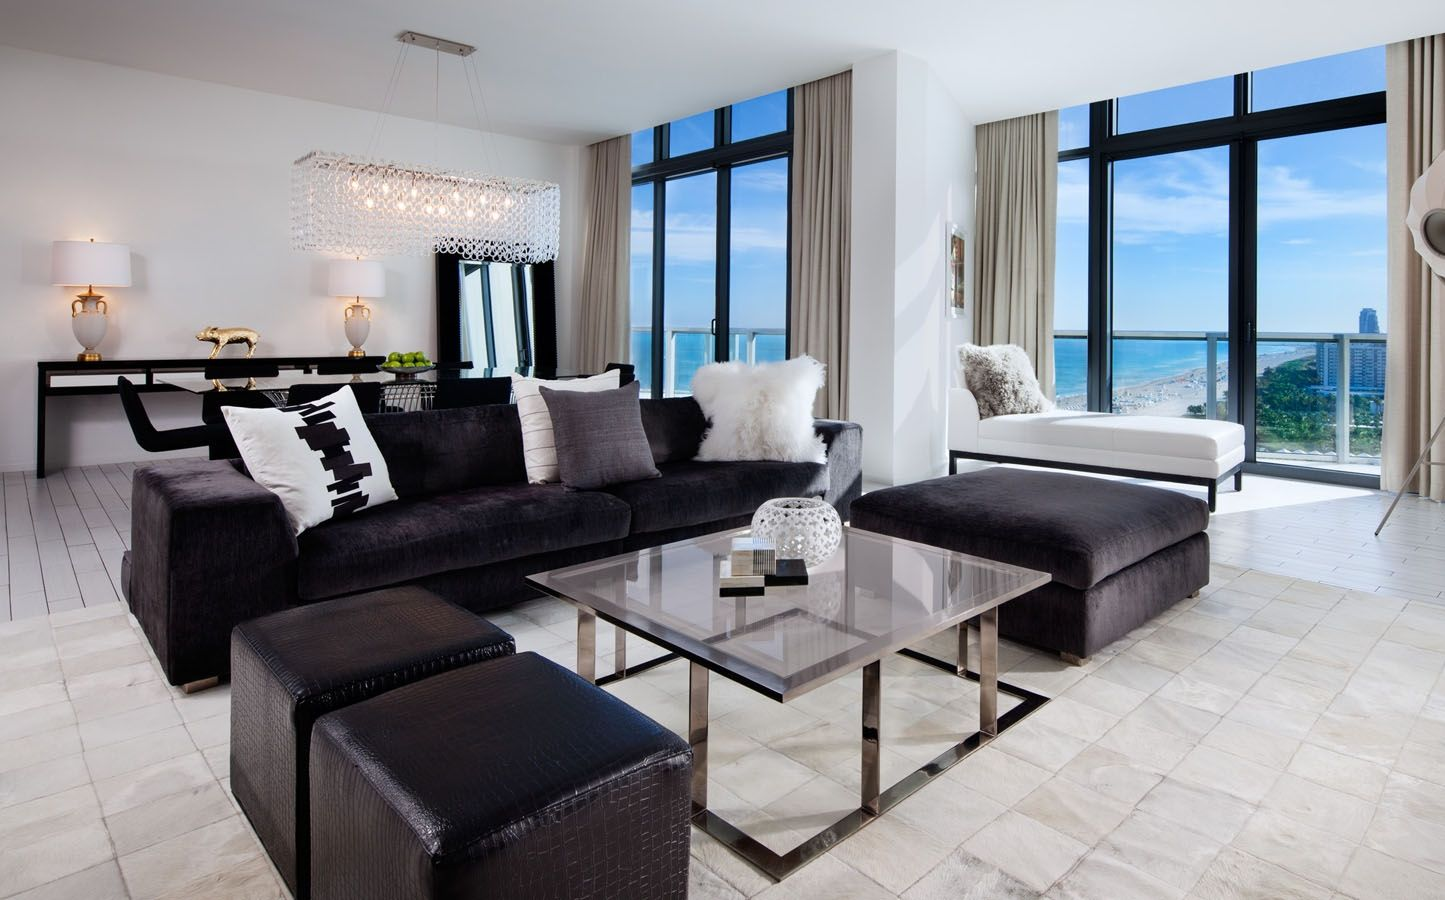 87 living room w hotel miami photos on the map w for Design hotel mr president karadjordjeva 75